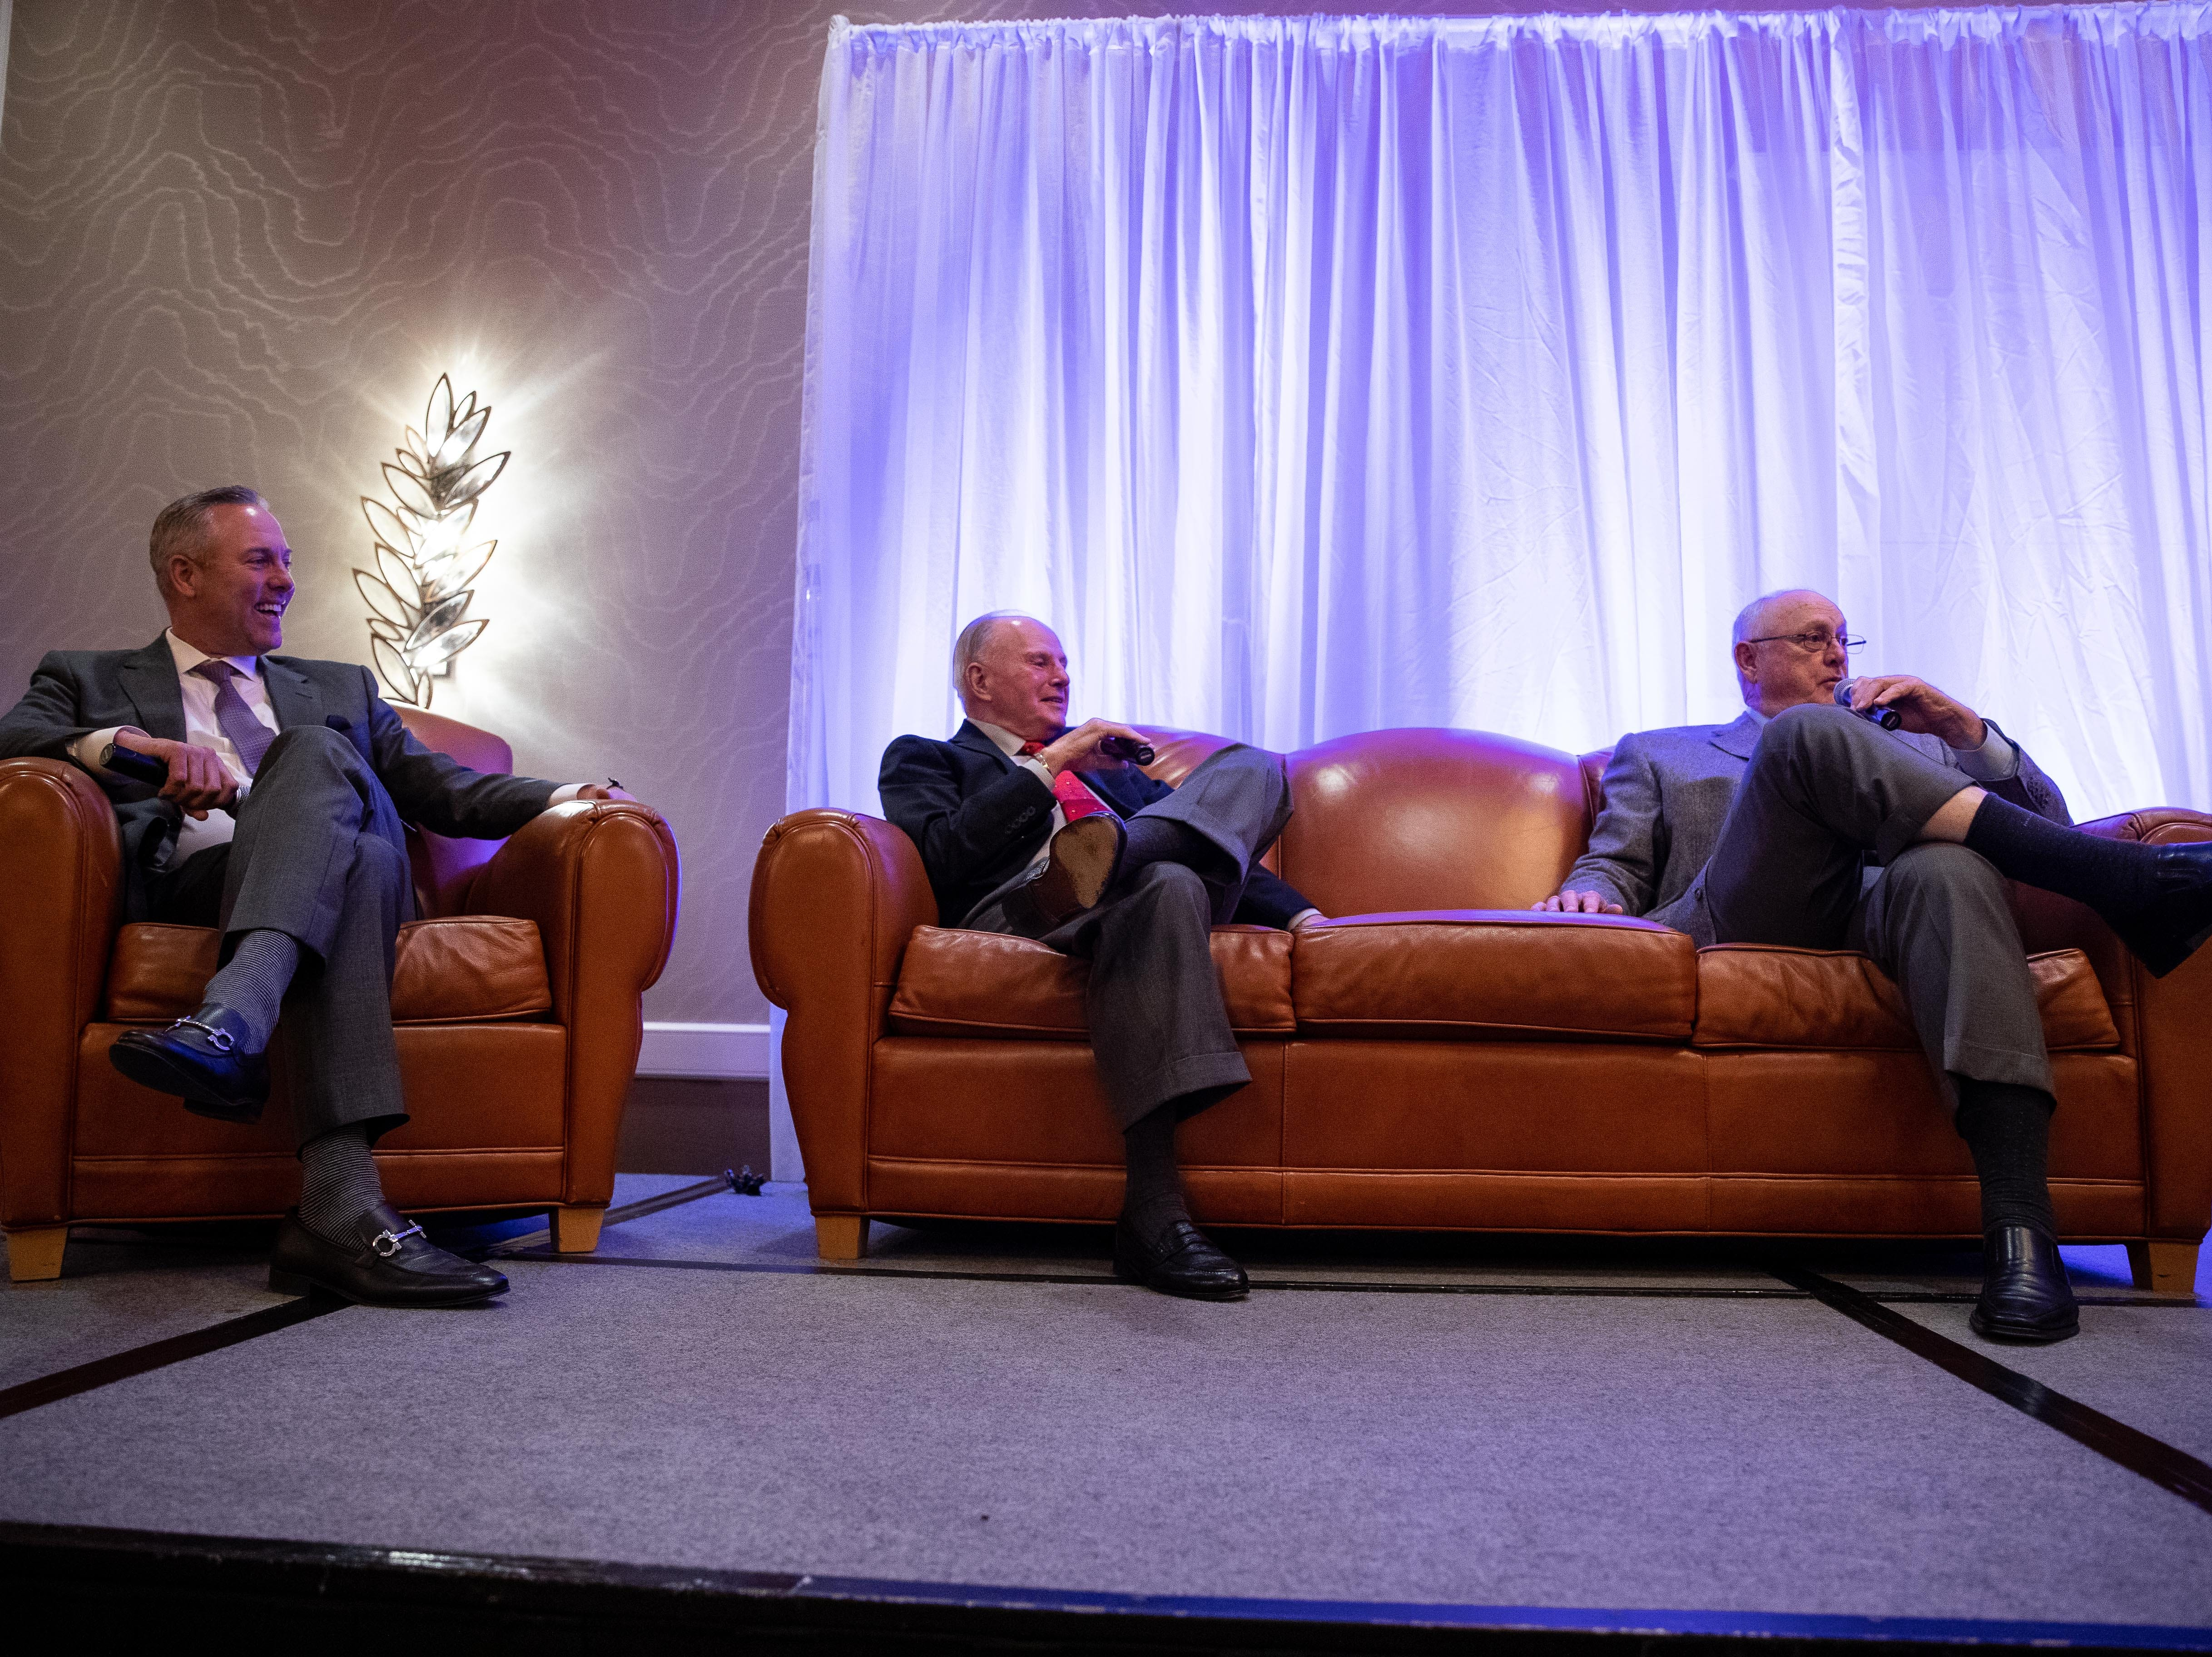 Huston Astros President Reid Ryan and his father Nolan Ryan talk about Don Sanders during the Hooks South Texas Baseball Banquet at the Omni Hotel on Thursday, Jan. 24, 2019.